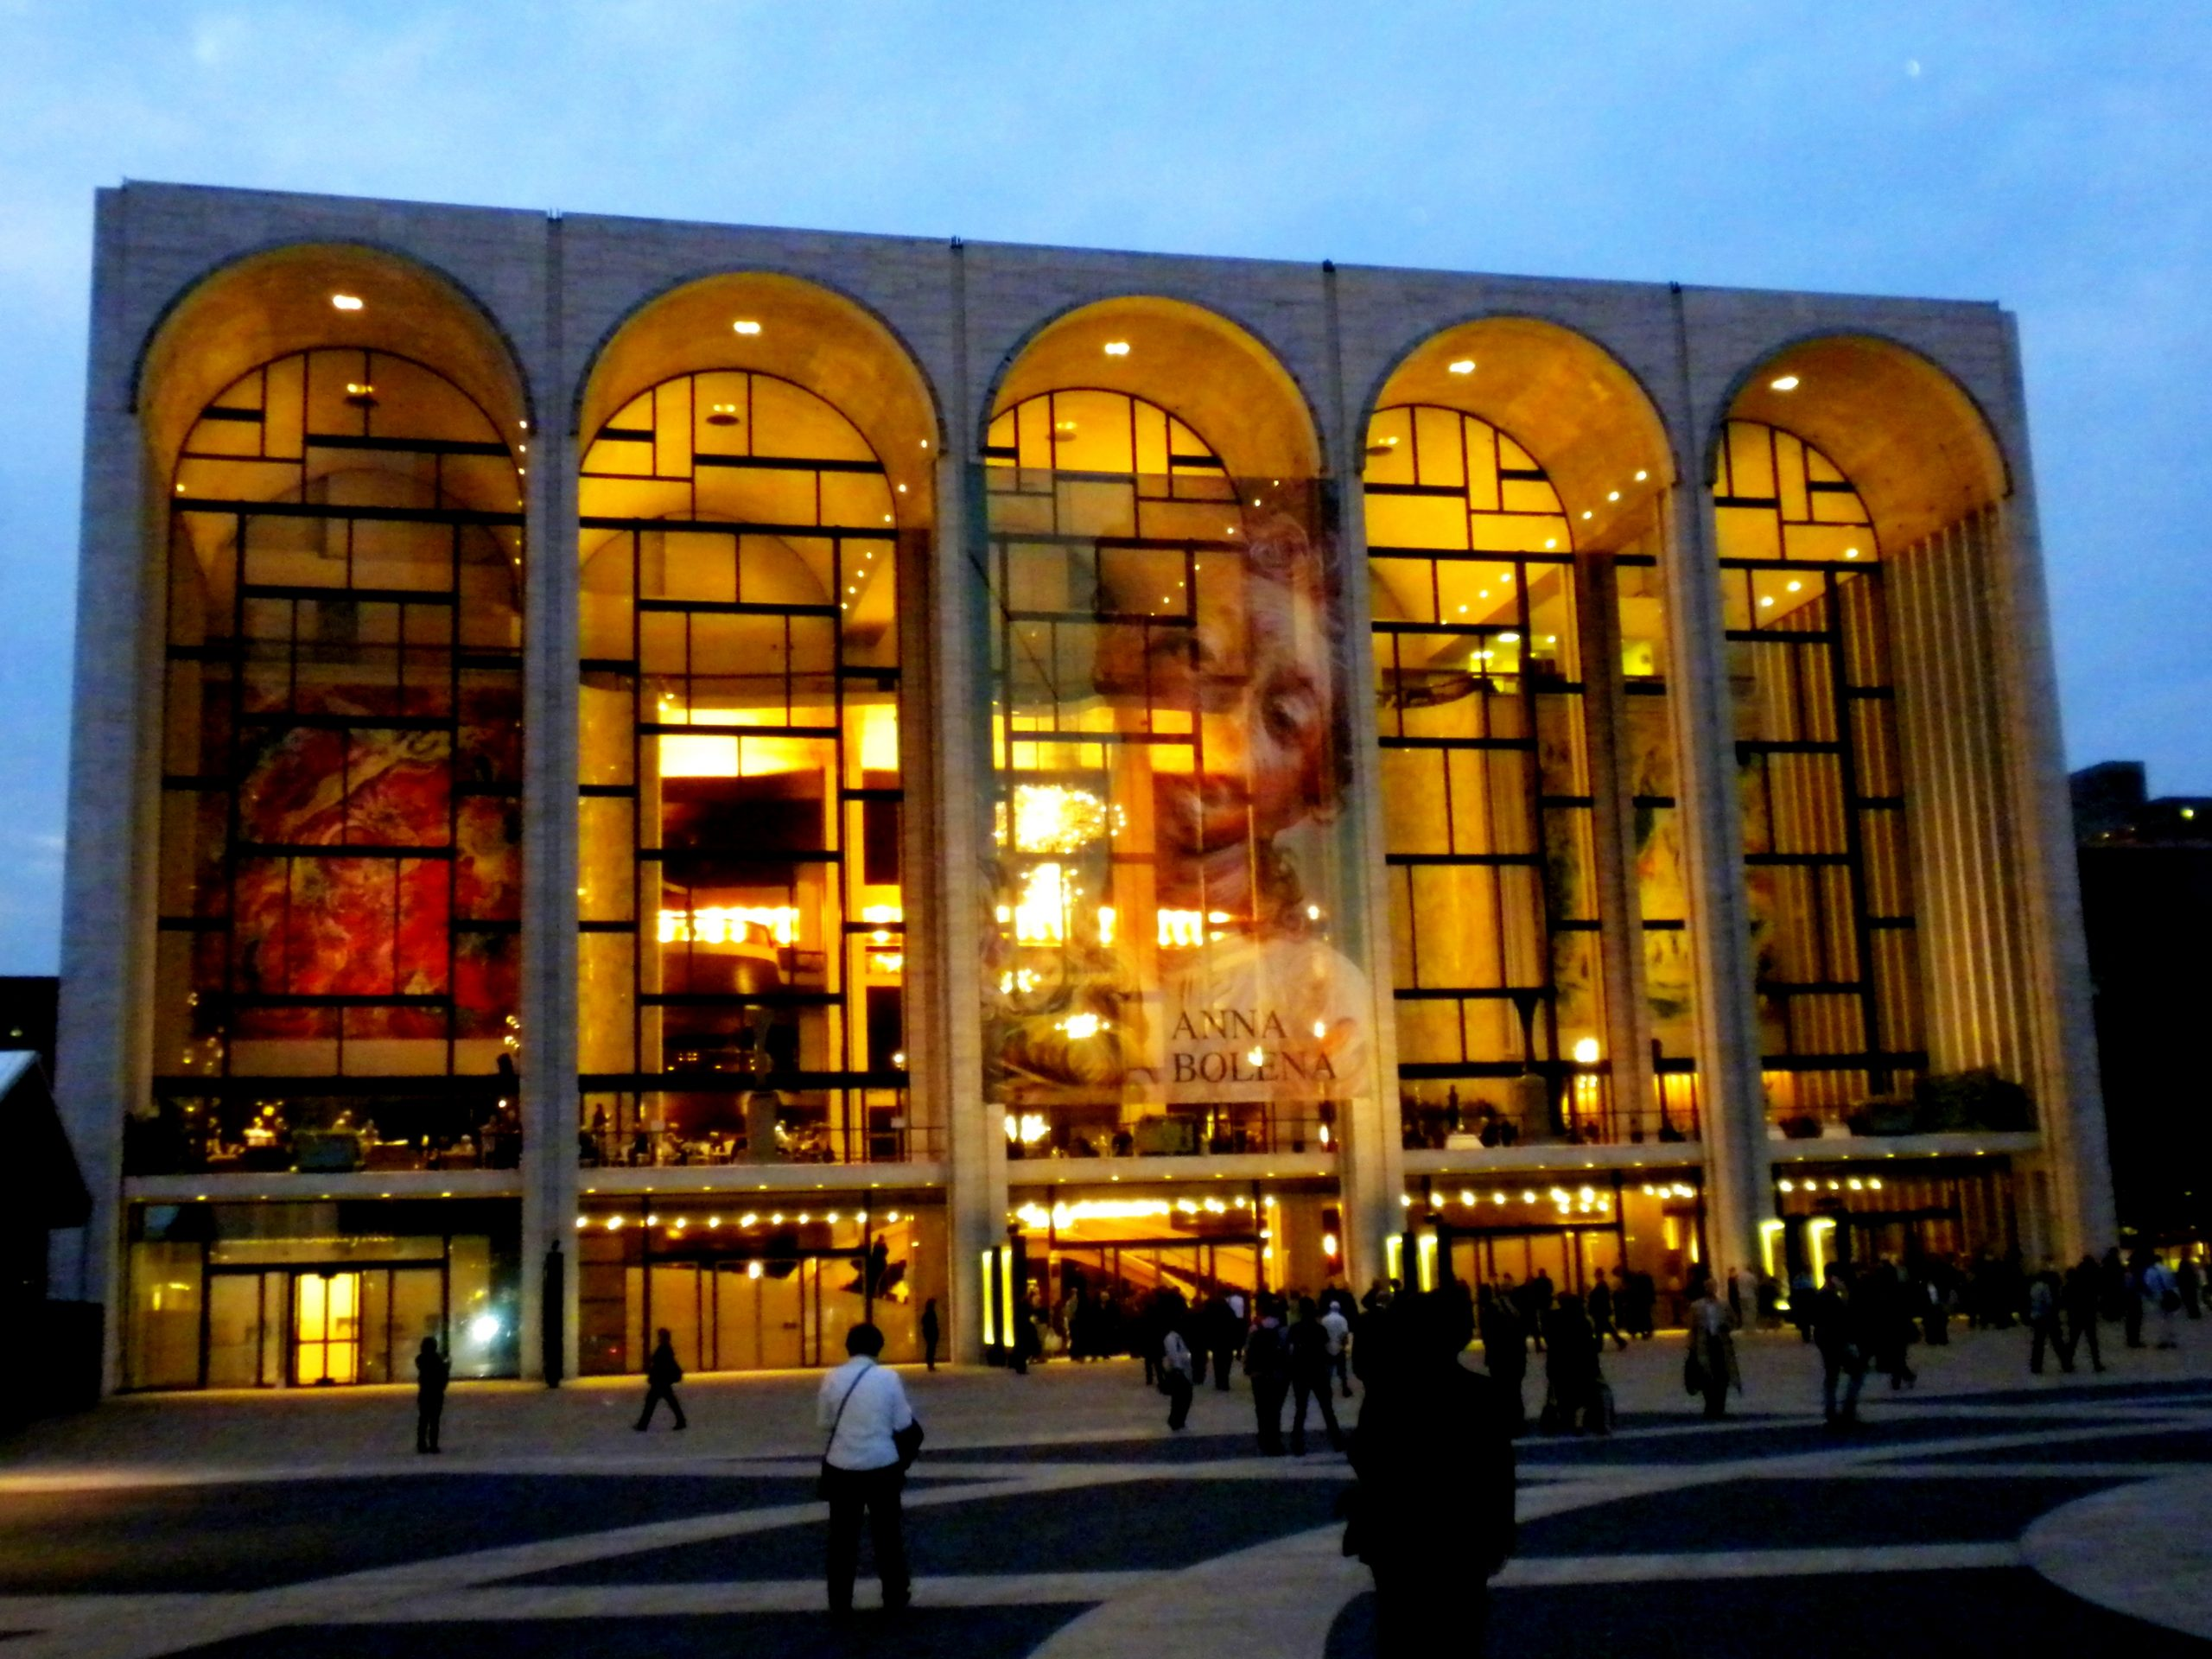 2010, Metropolitan Opera House, Lincoln Center, New York, New York